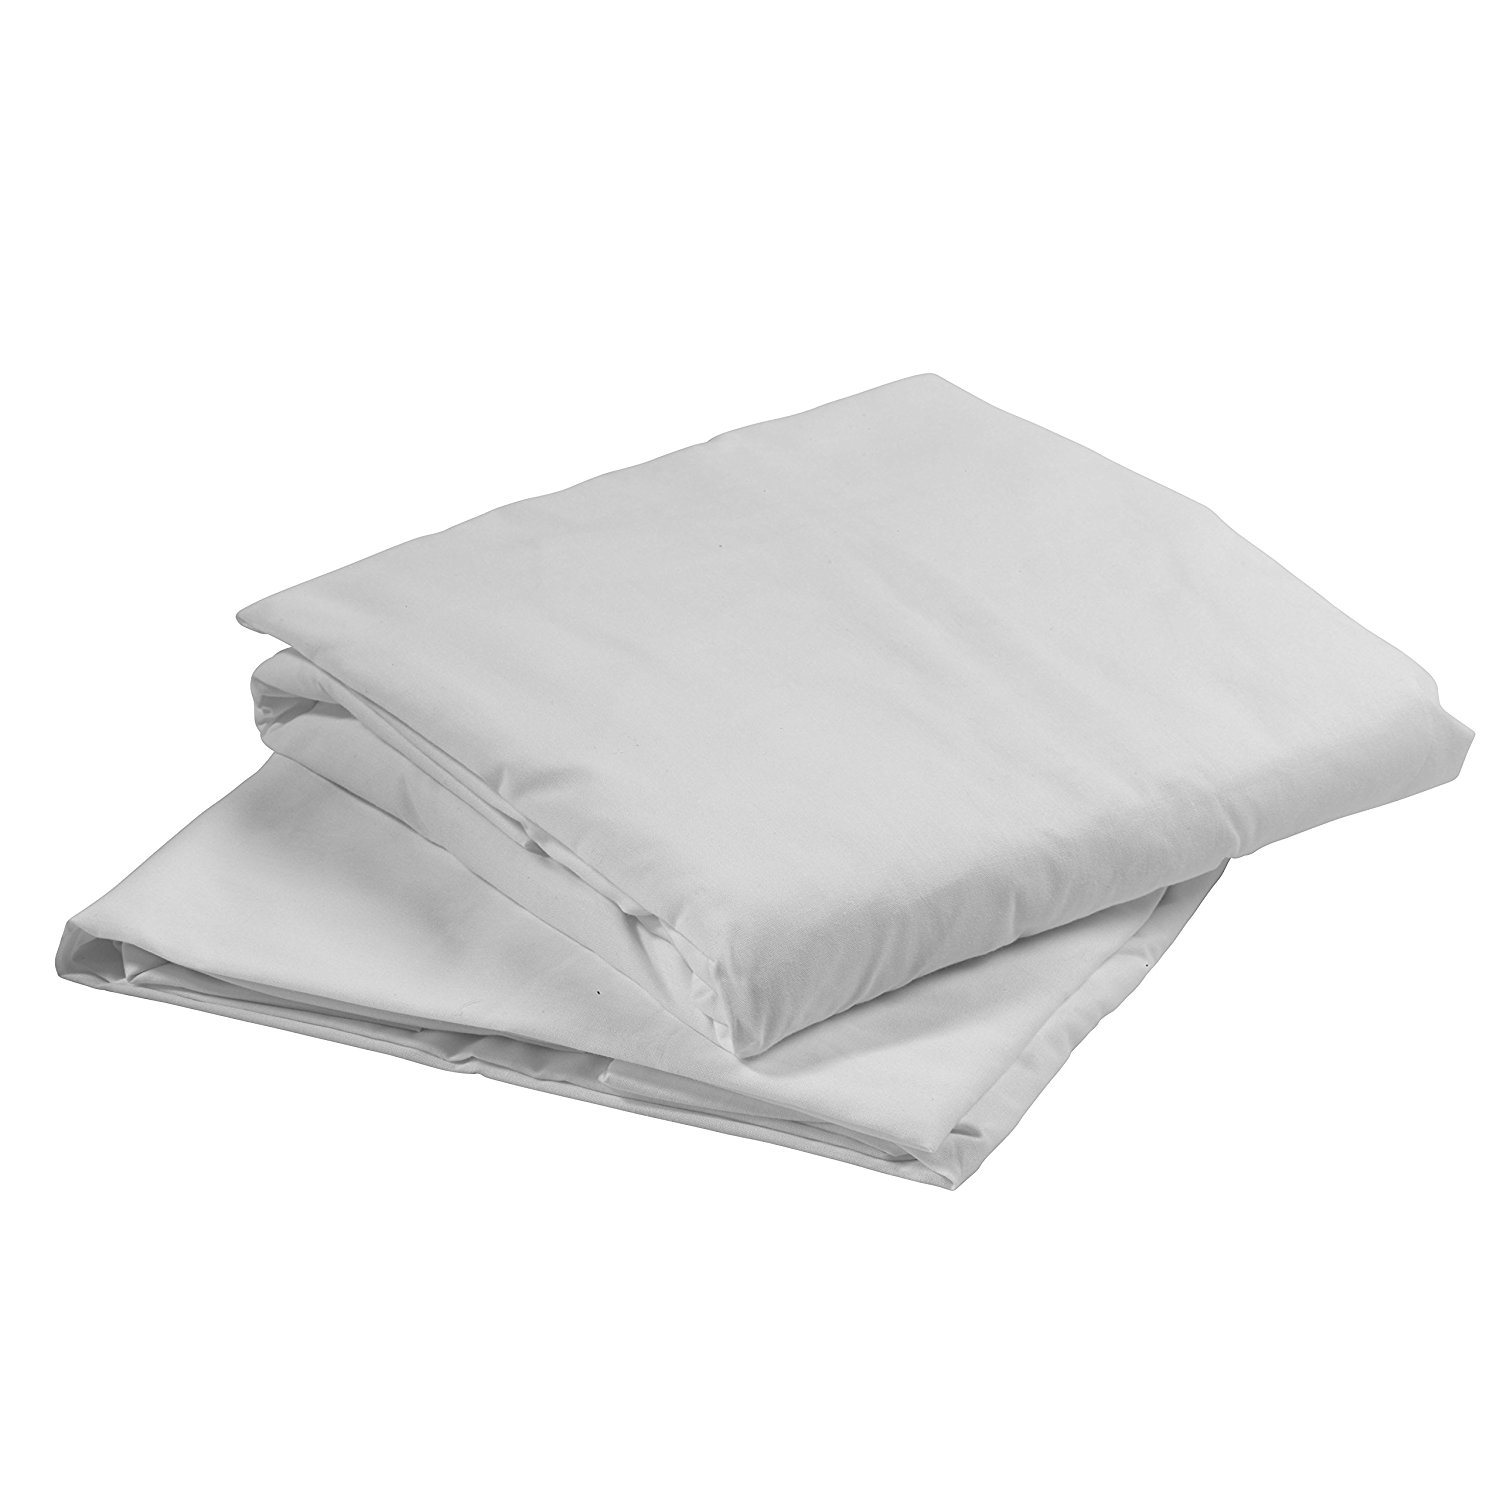 """15030HBL Hospital Bed Fitted Sheets, White, 36"""" x 80"""" x 5..."""